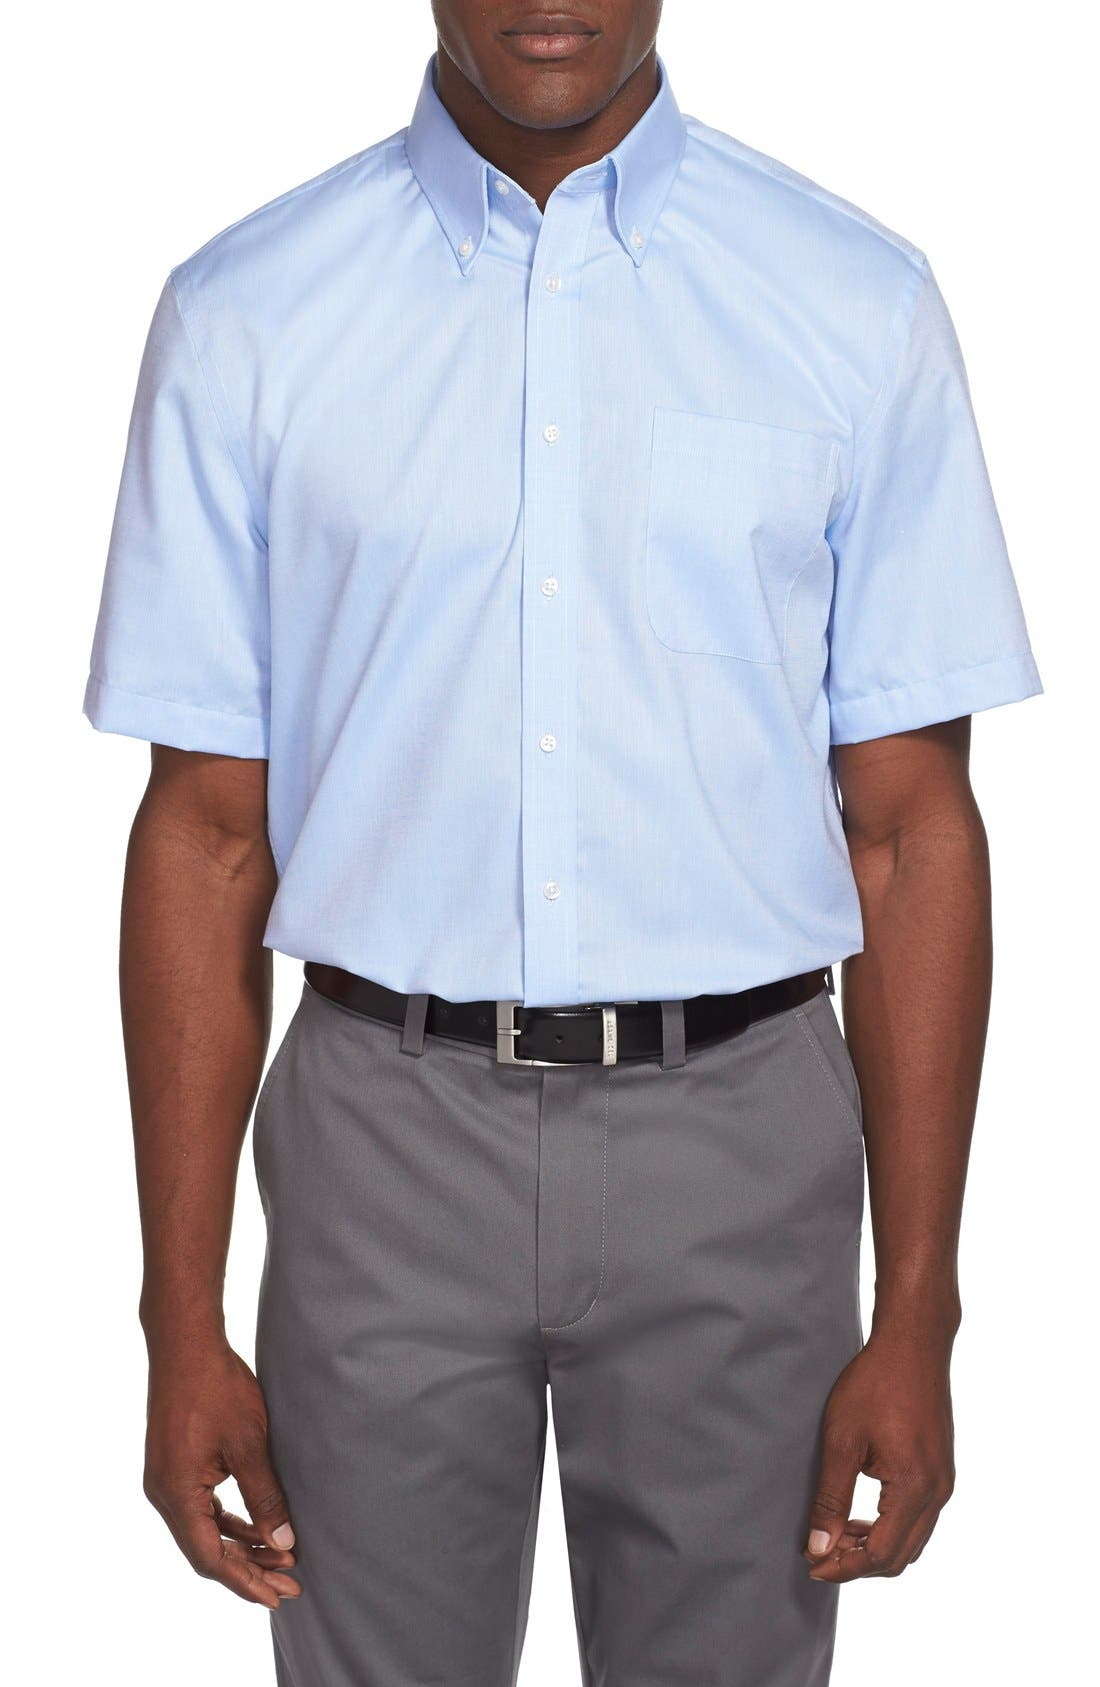 Alternate Image 2  - Nordstrom Men's Shop Traditional Fit Non-Iron Short Sleeve Dress Shirt (Online Only)